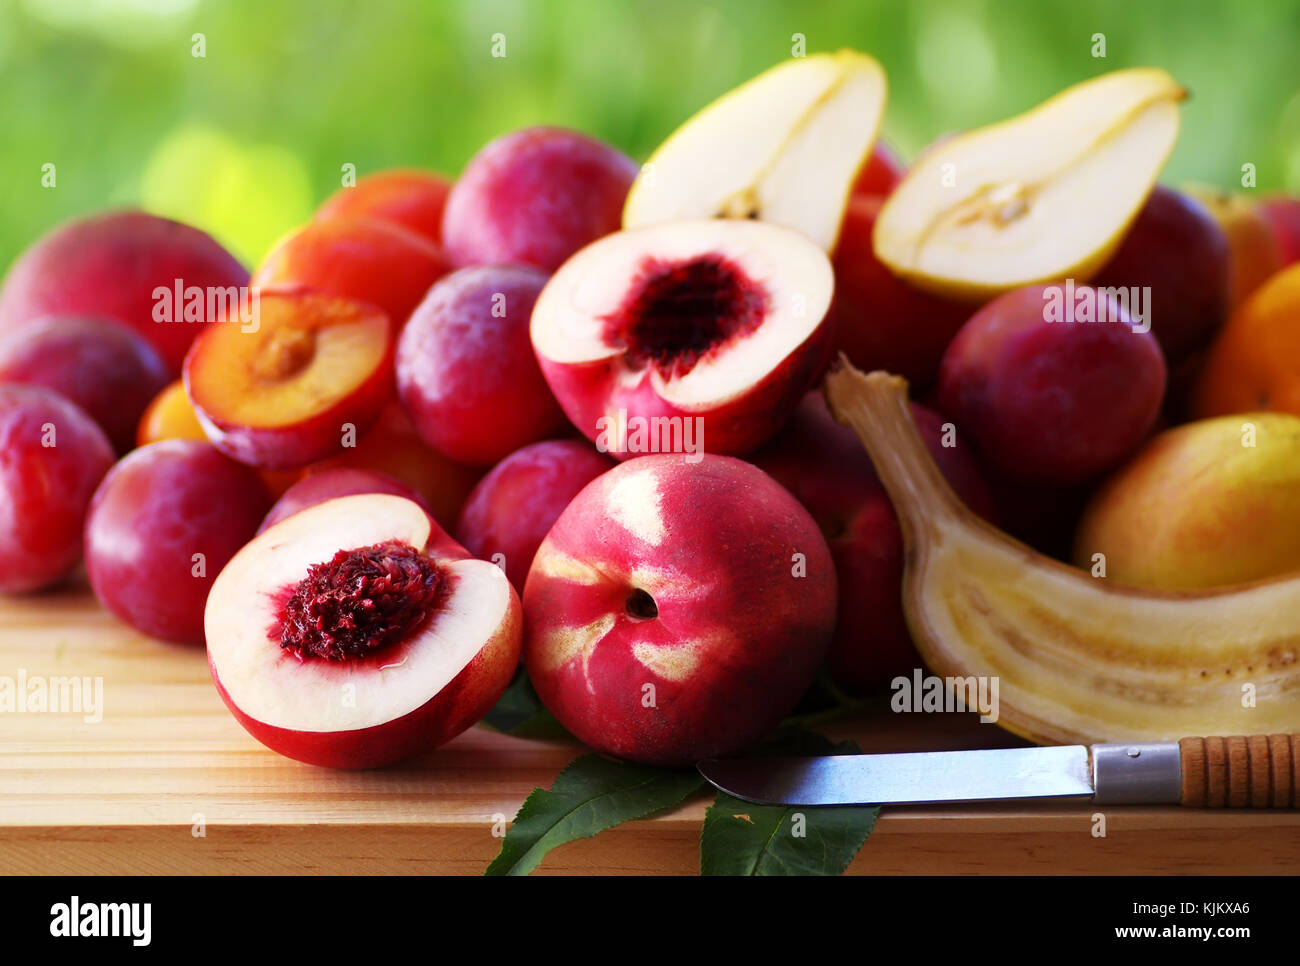 ripe nectarines and plums on table Stock Photo